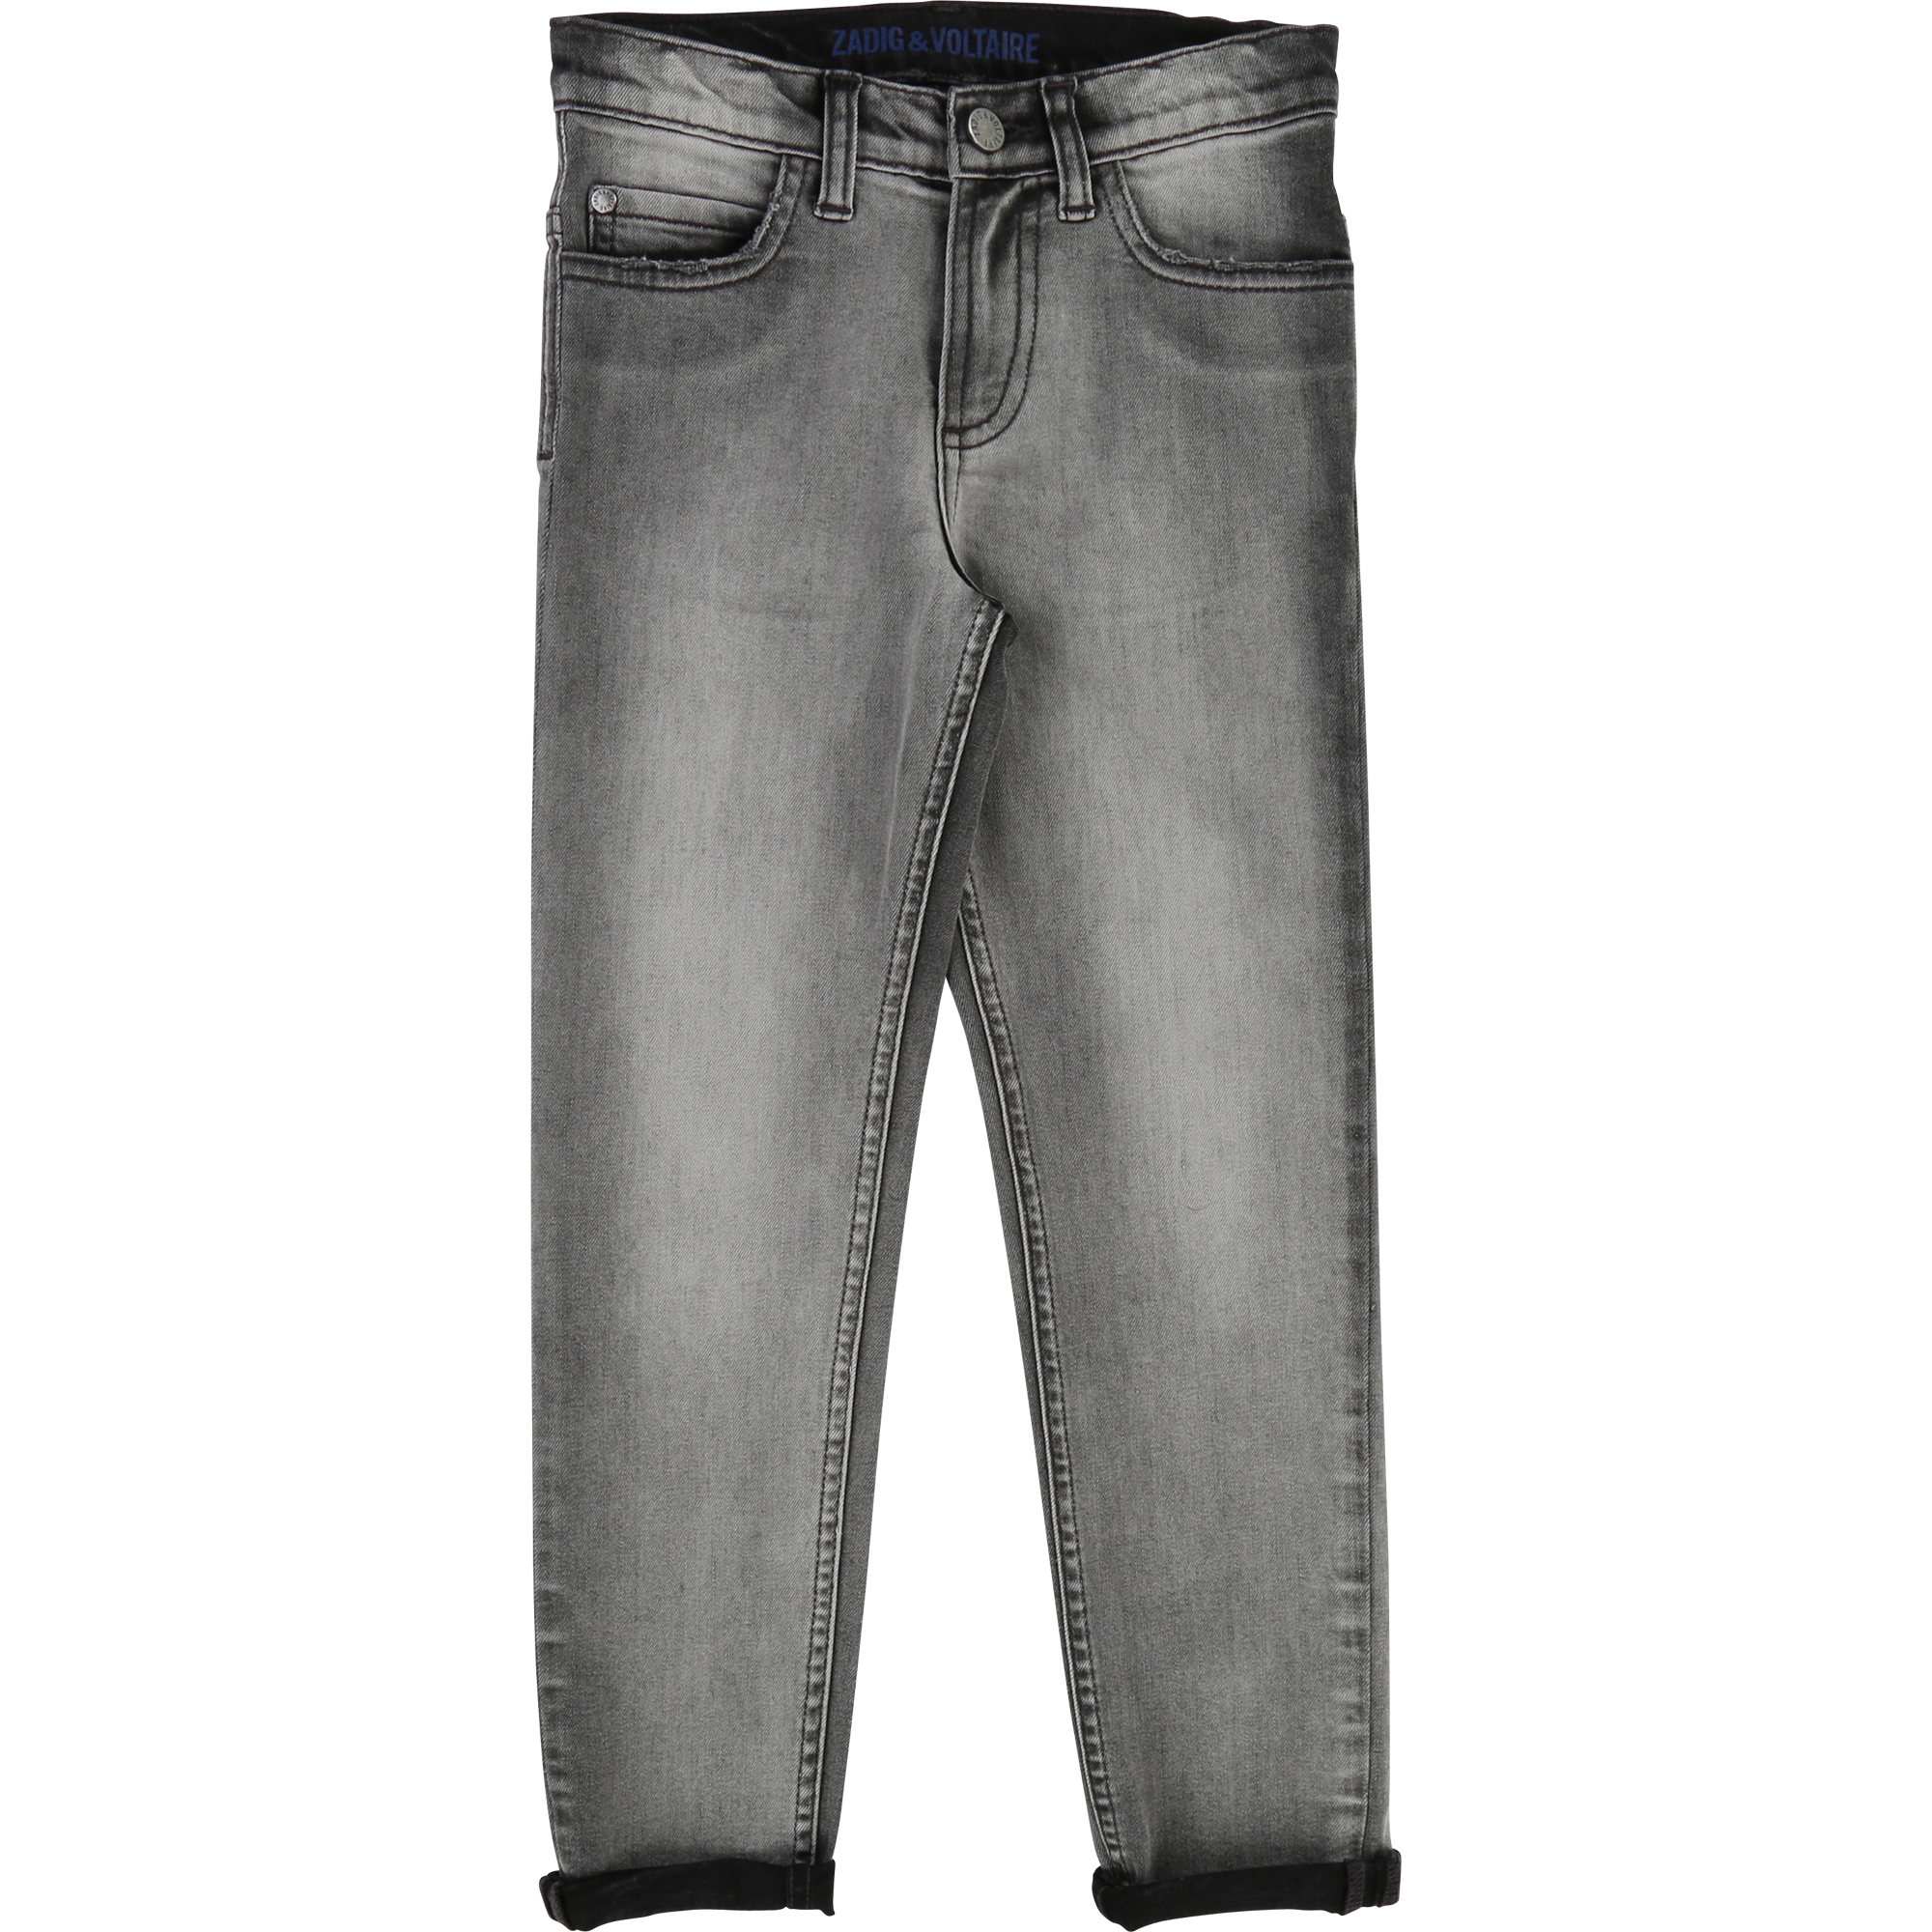 Zadig & Voltaire  - GYPSY ROCK GREY DENIM TROUSERS - Clothing